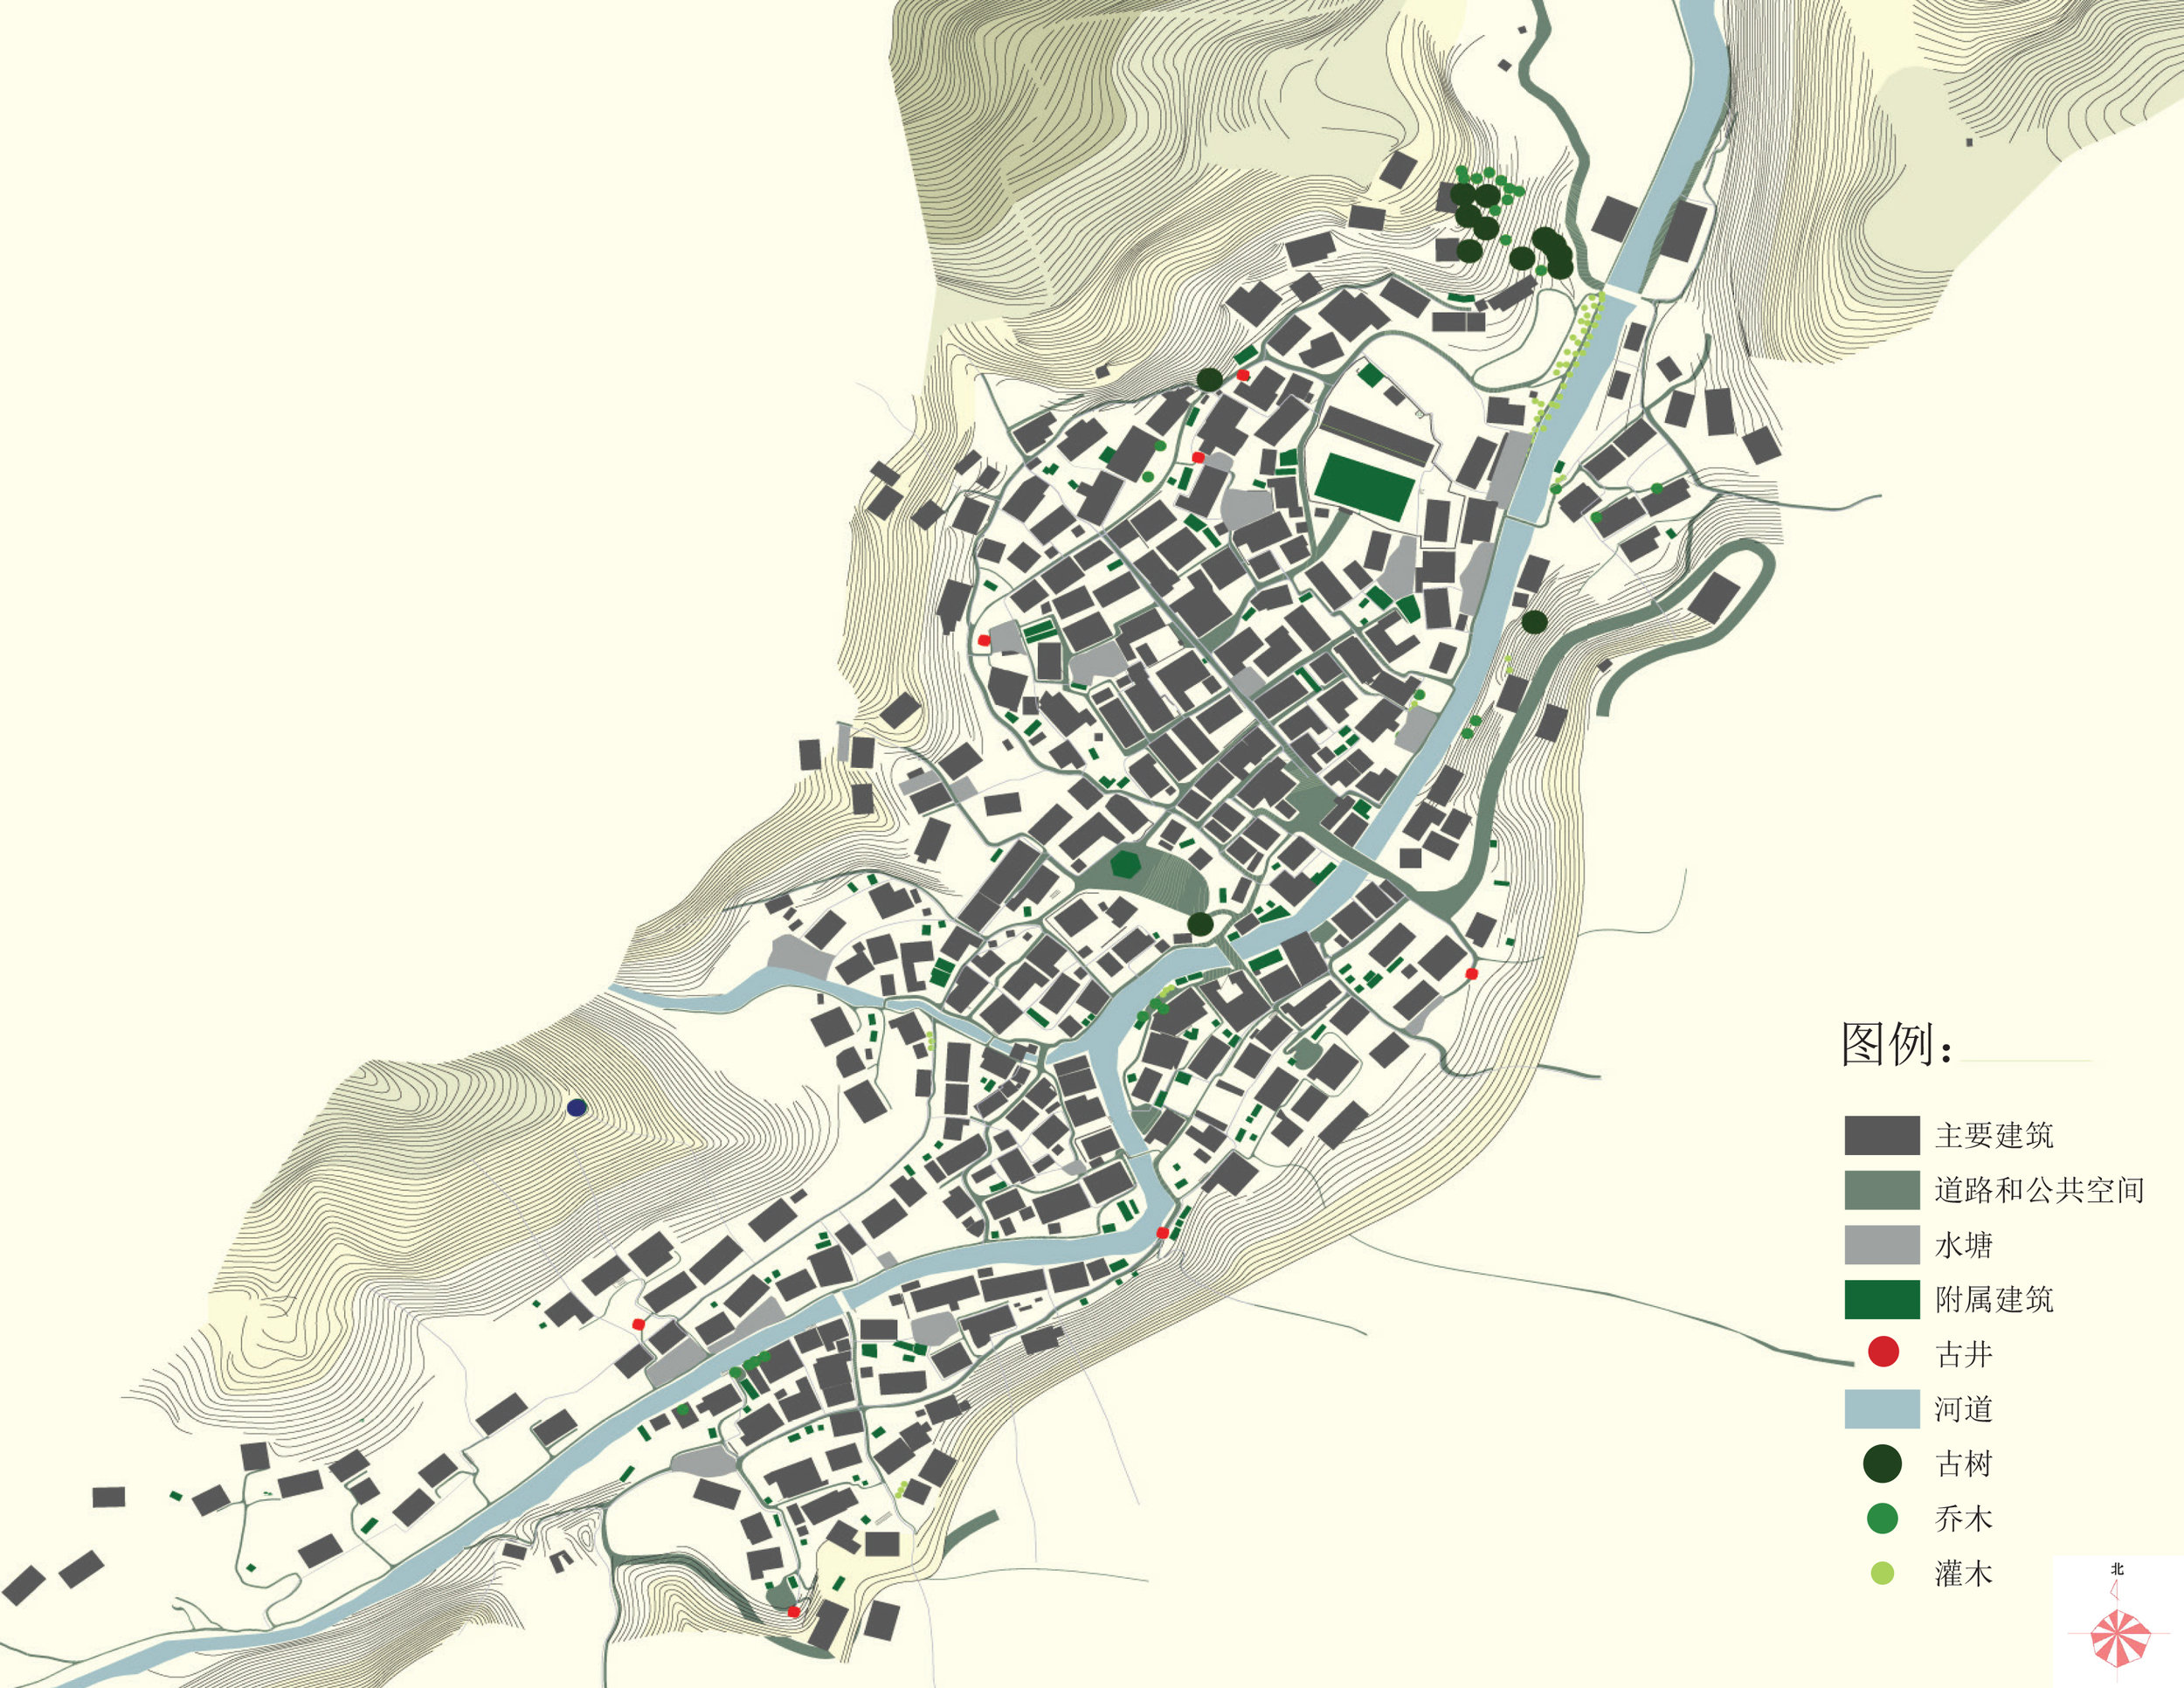 Click  on map for 360 photo database. Map courtesy of the Global Heritage Fund.